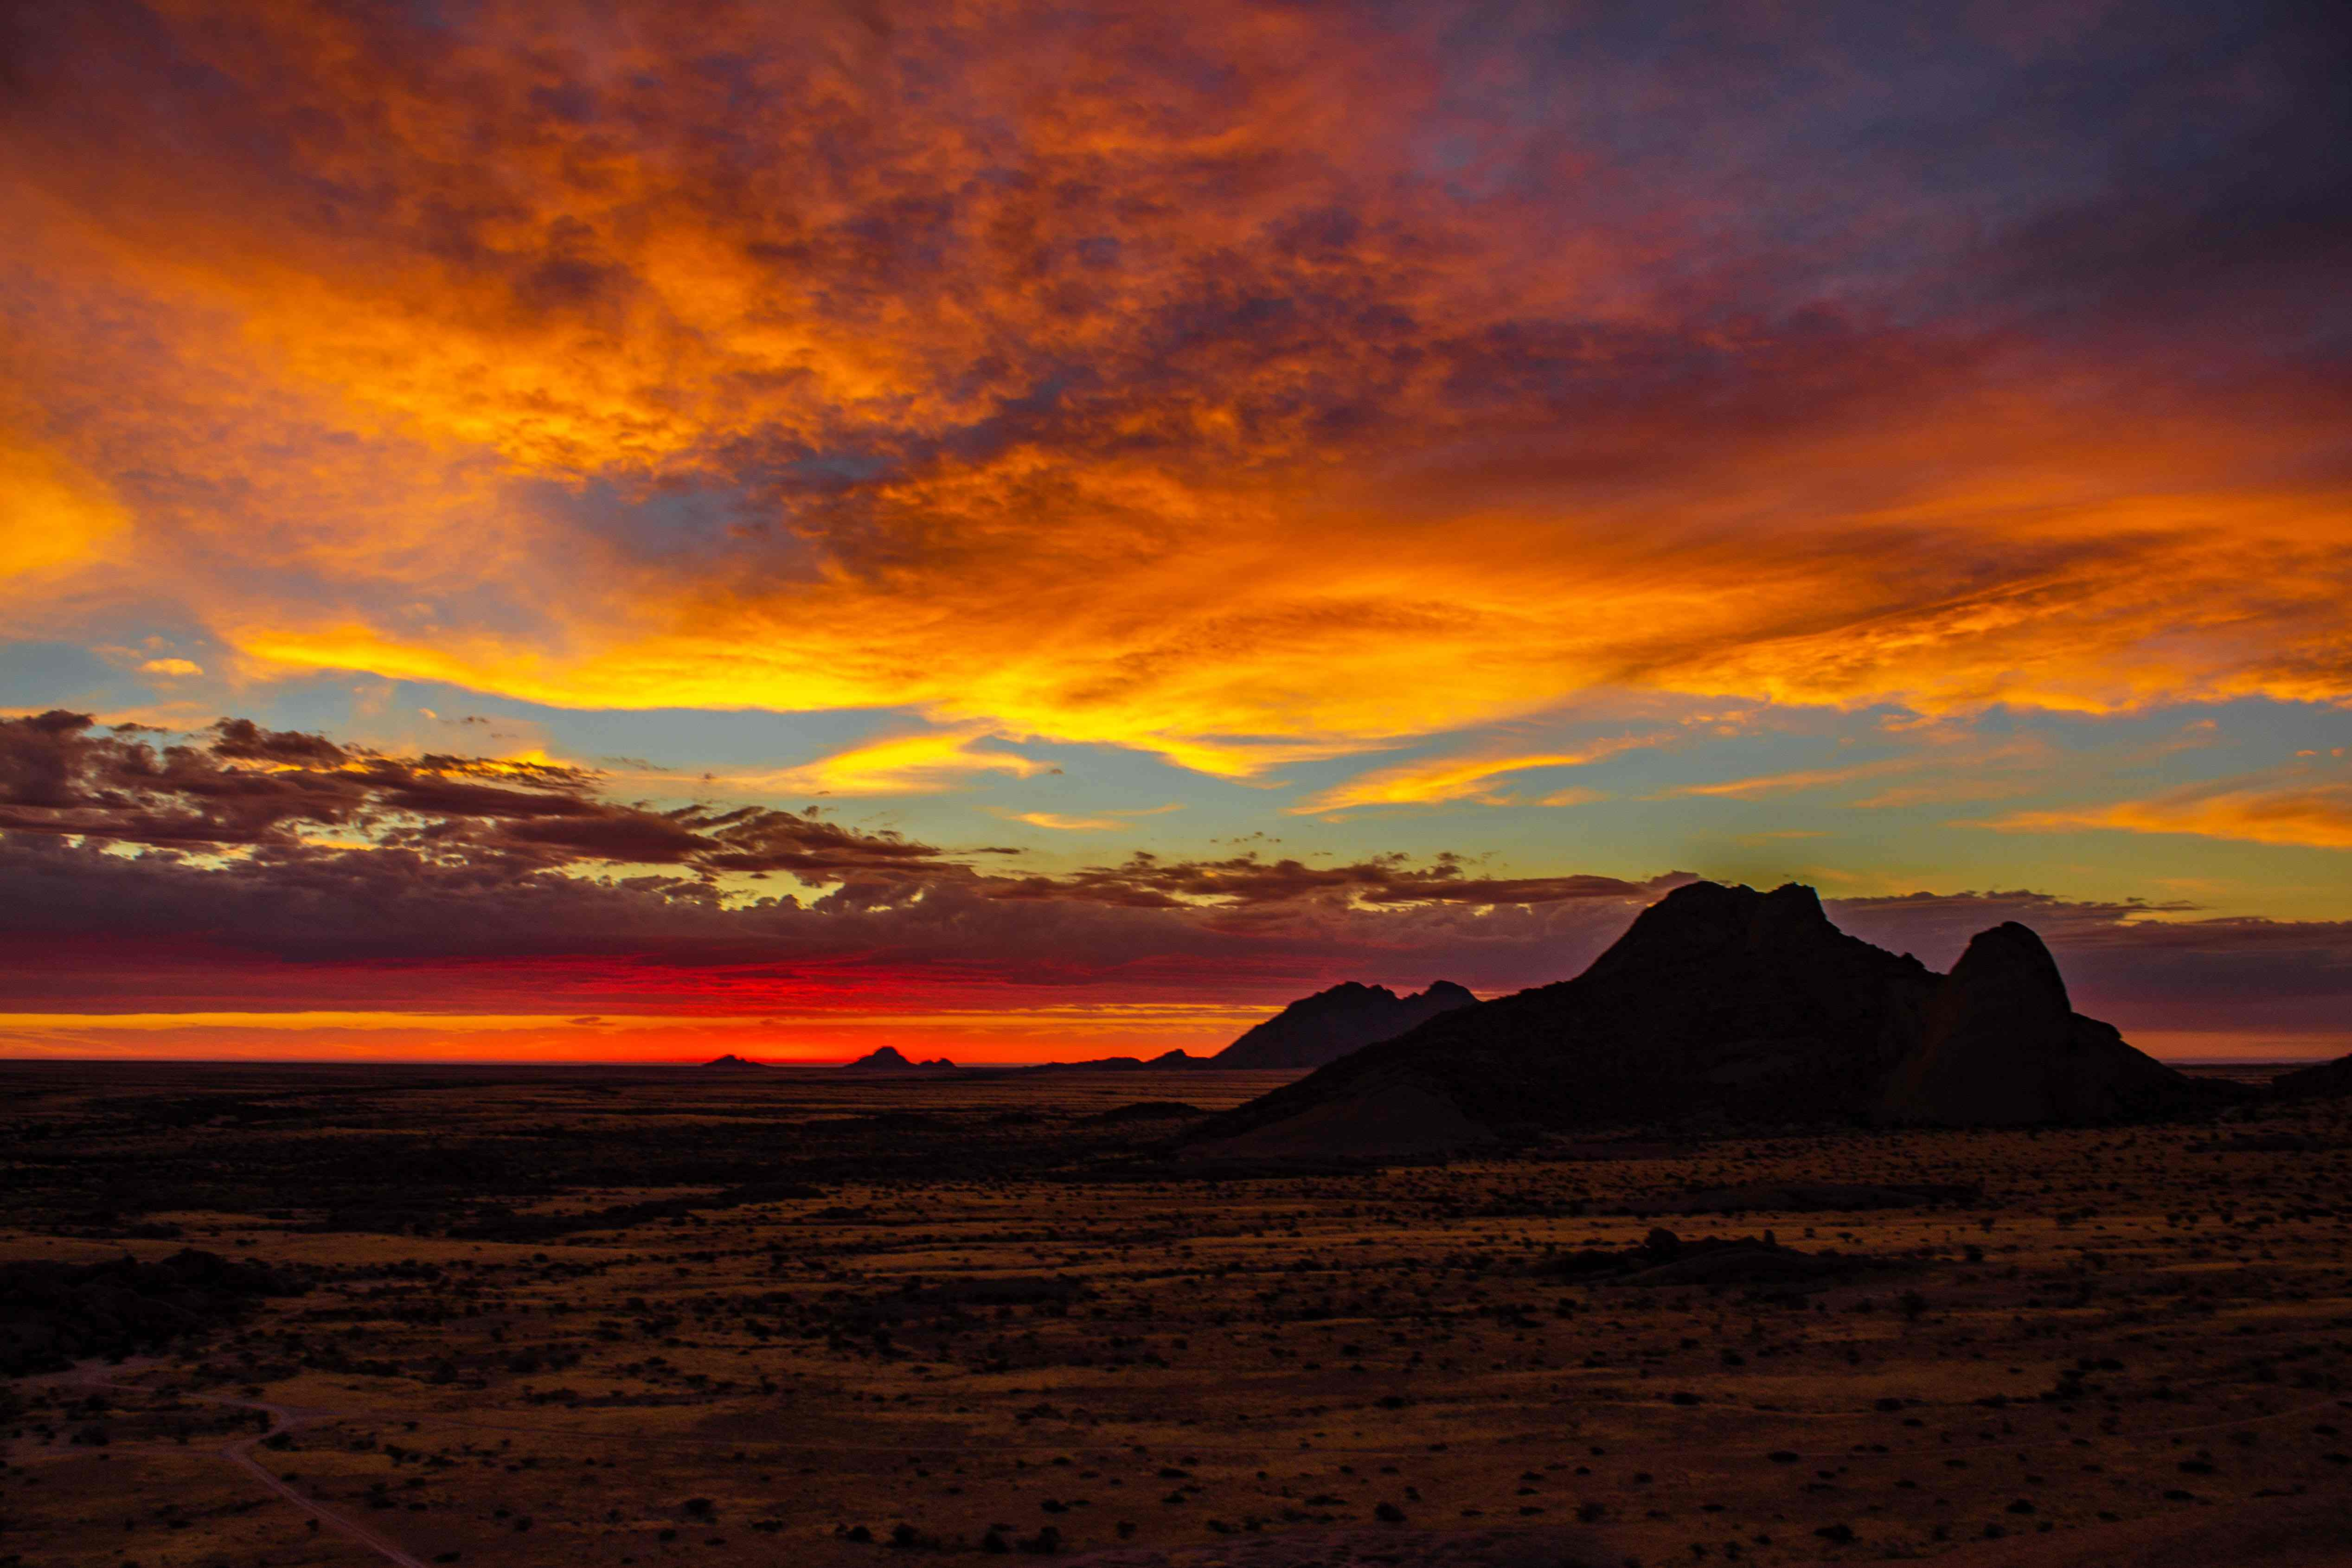 sunset overlooking a mountain; the sky is a combination of bright pinks, purples, blues, and oranges with a hint of yellow